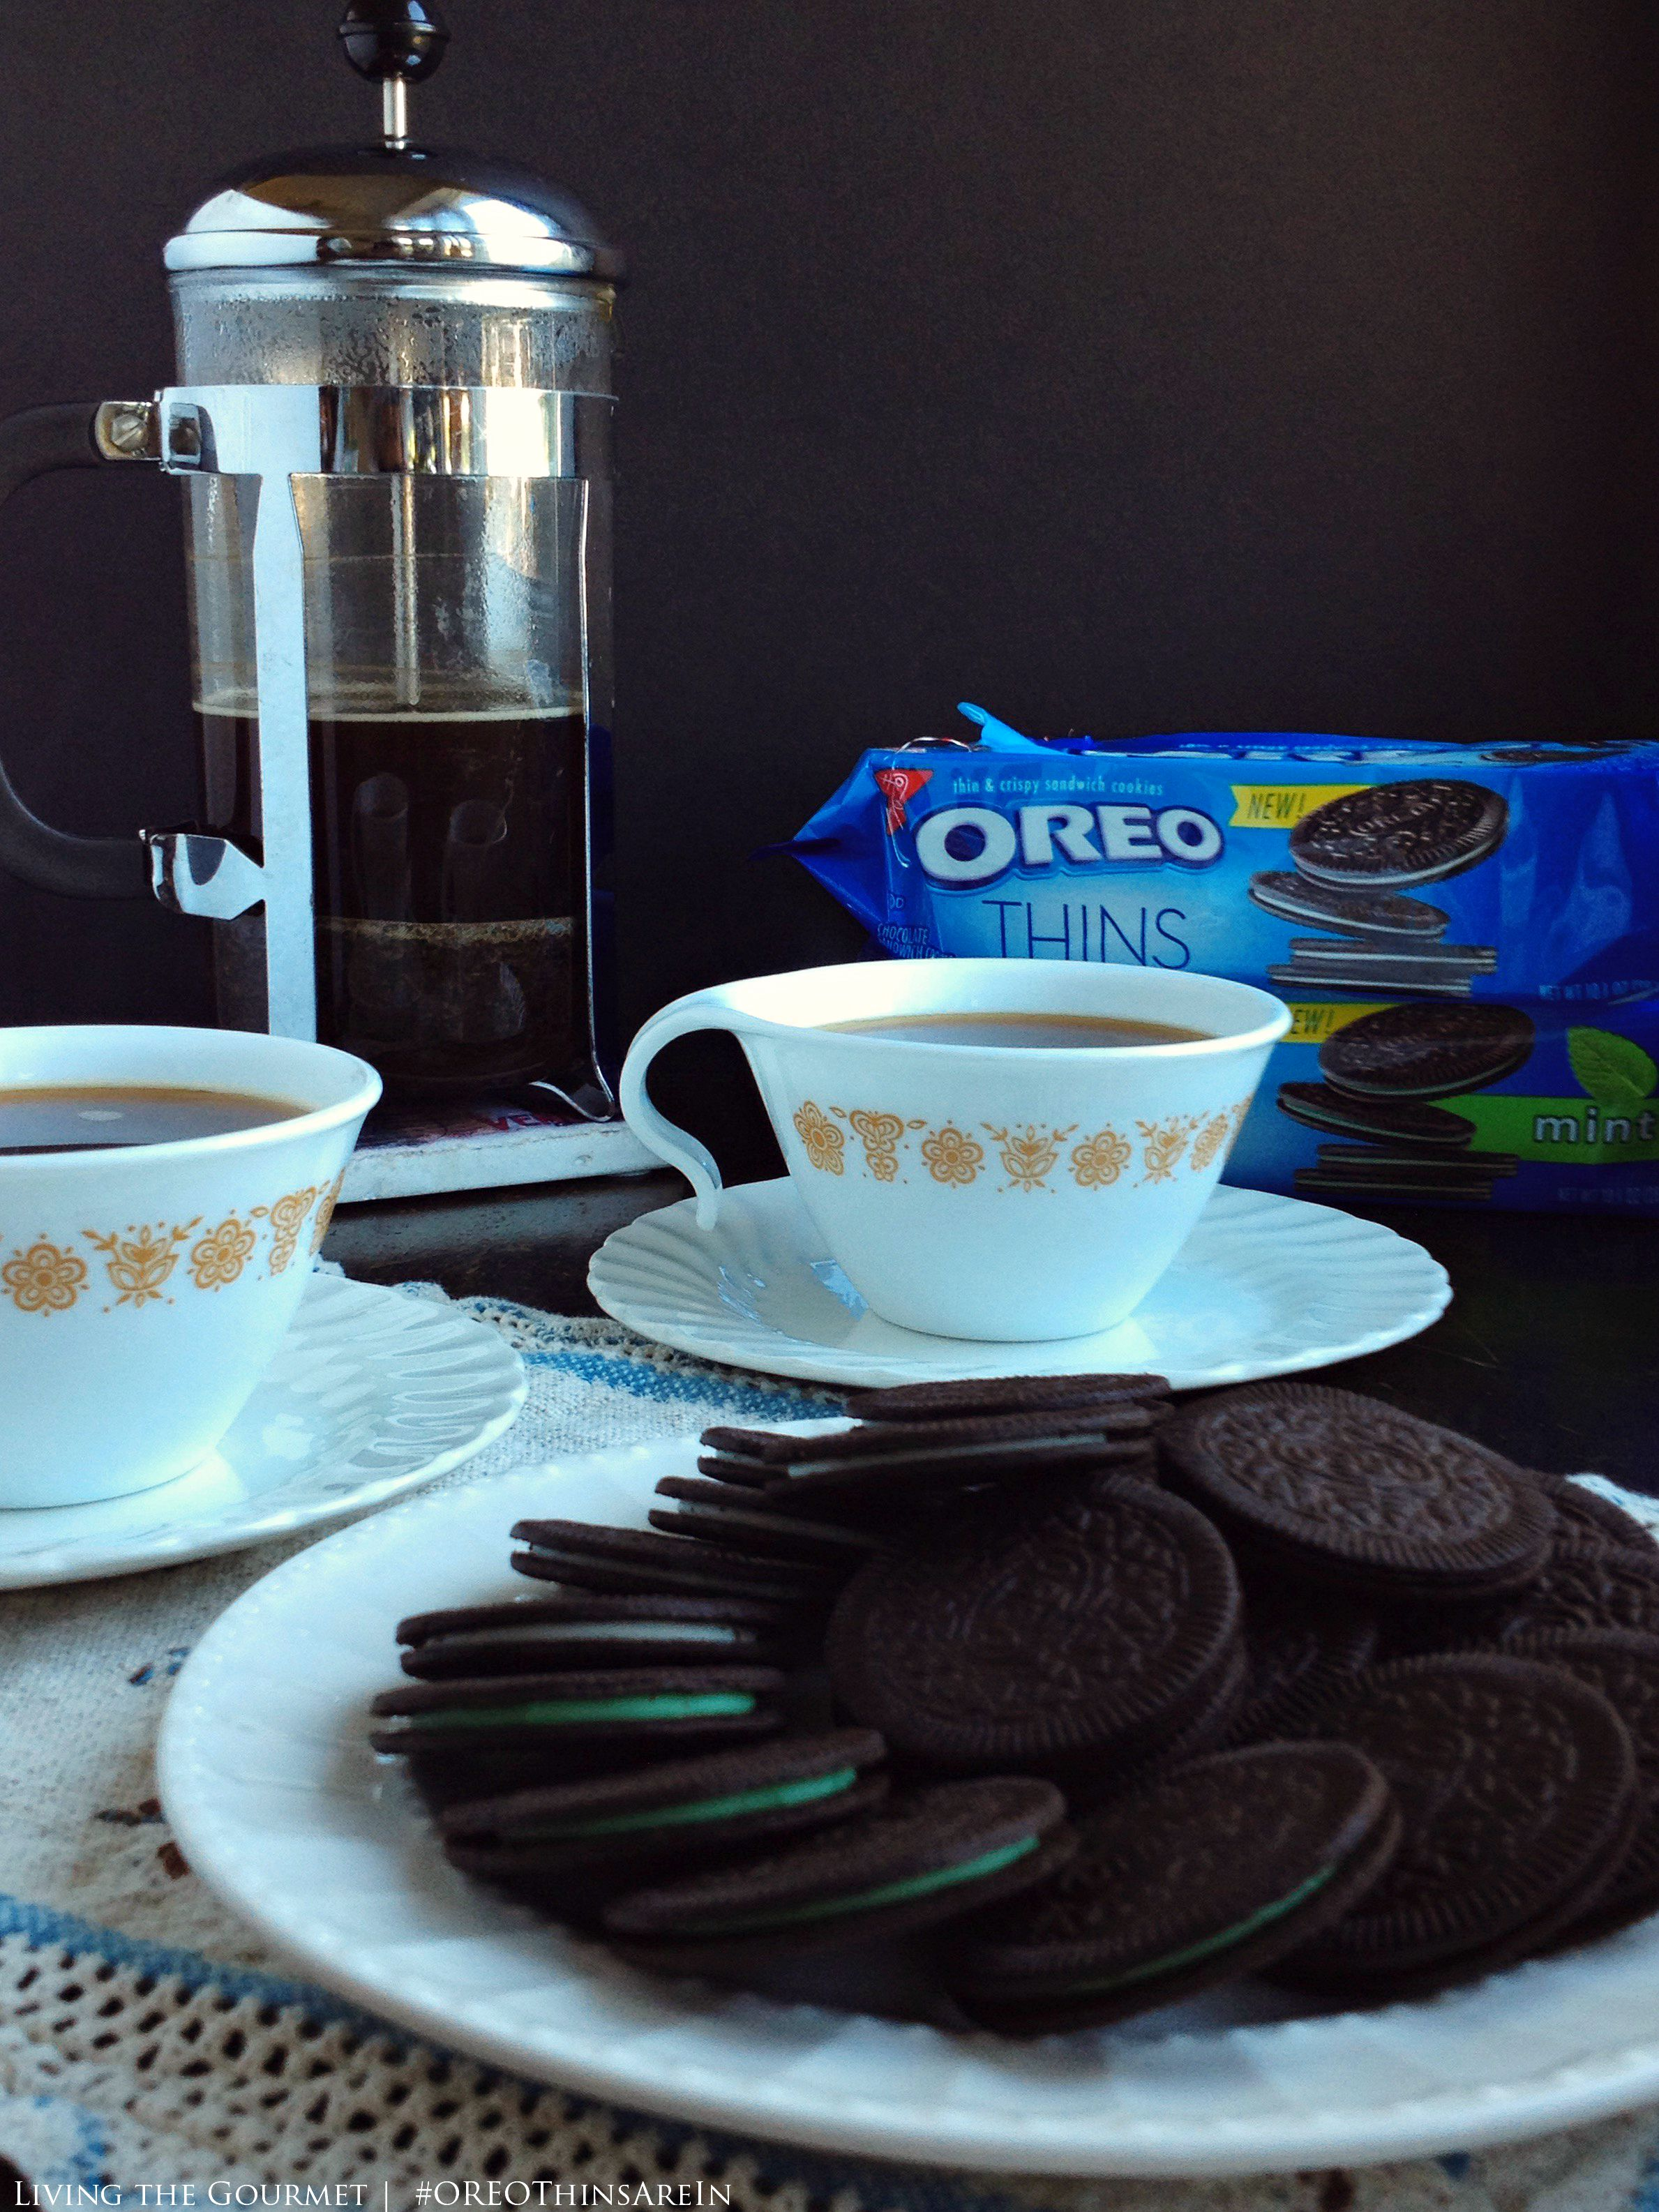 Living the Gourmet: French Press Coffee | #OREOThinsAreIn AD